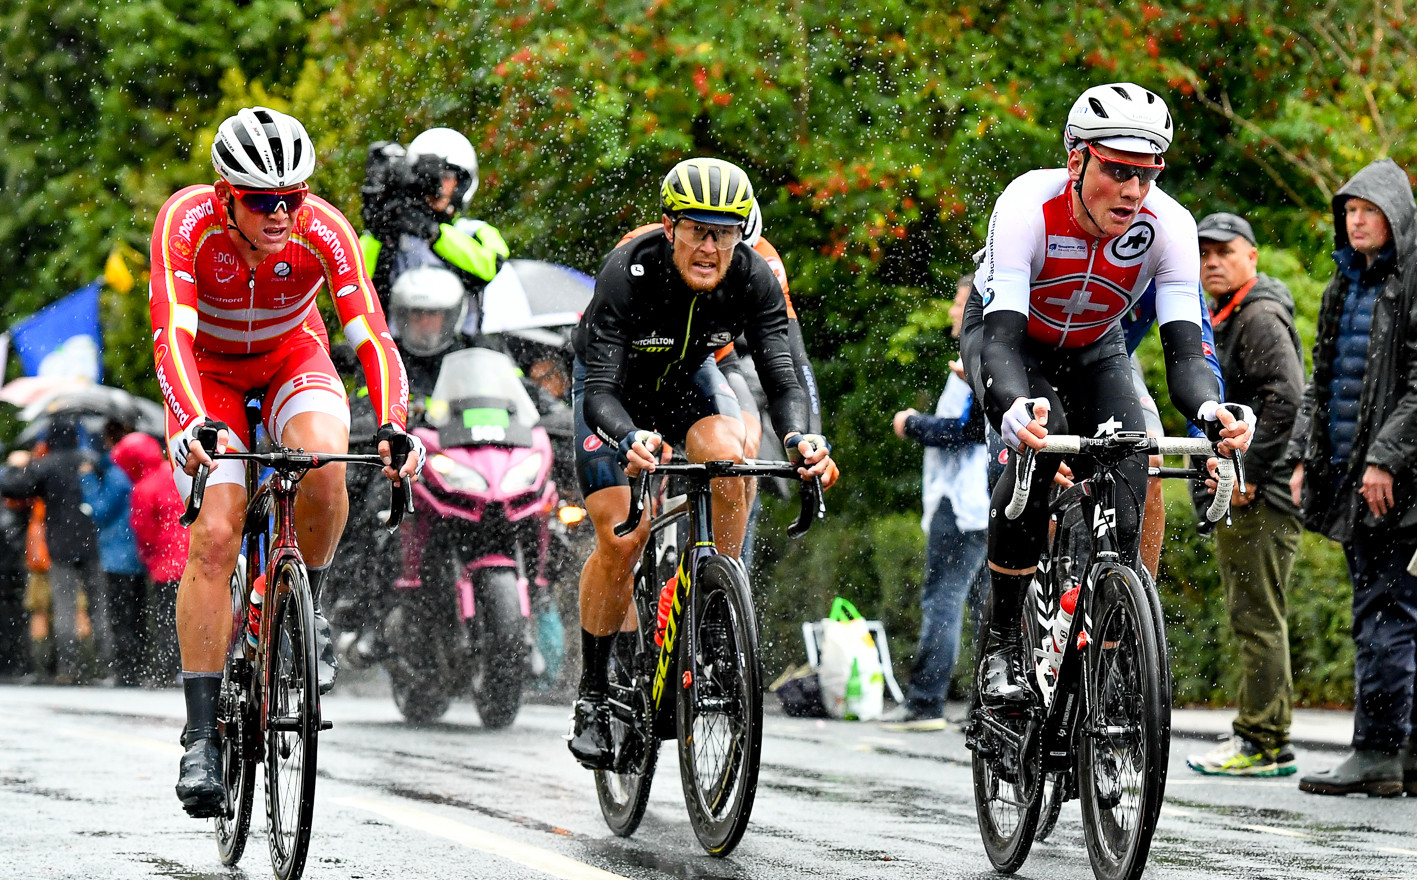 Mats Pedersen (DK), Matteo Trentin (I) and Stefan Kung (CH) in the final lap at the 2019 Road World Championships.